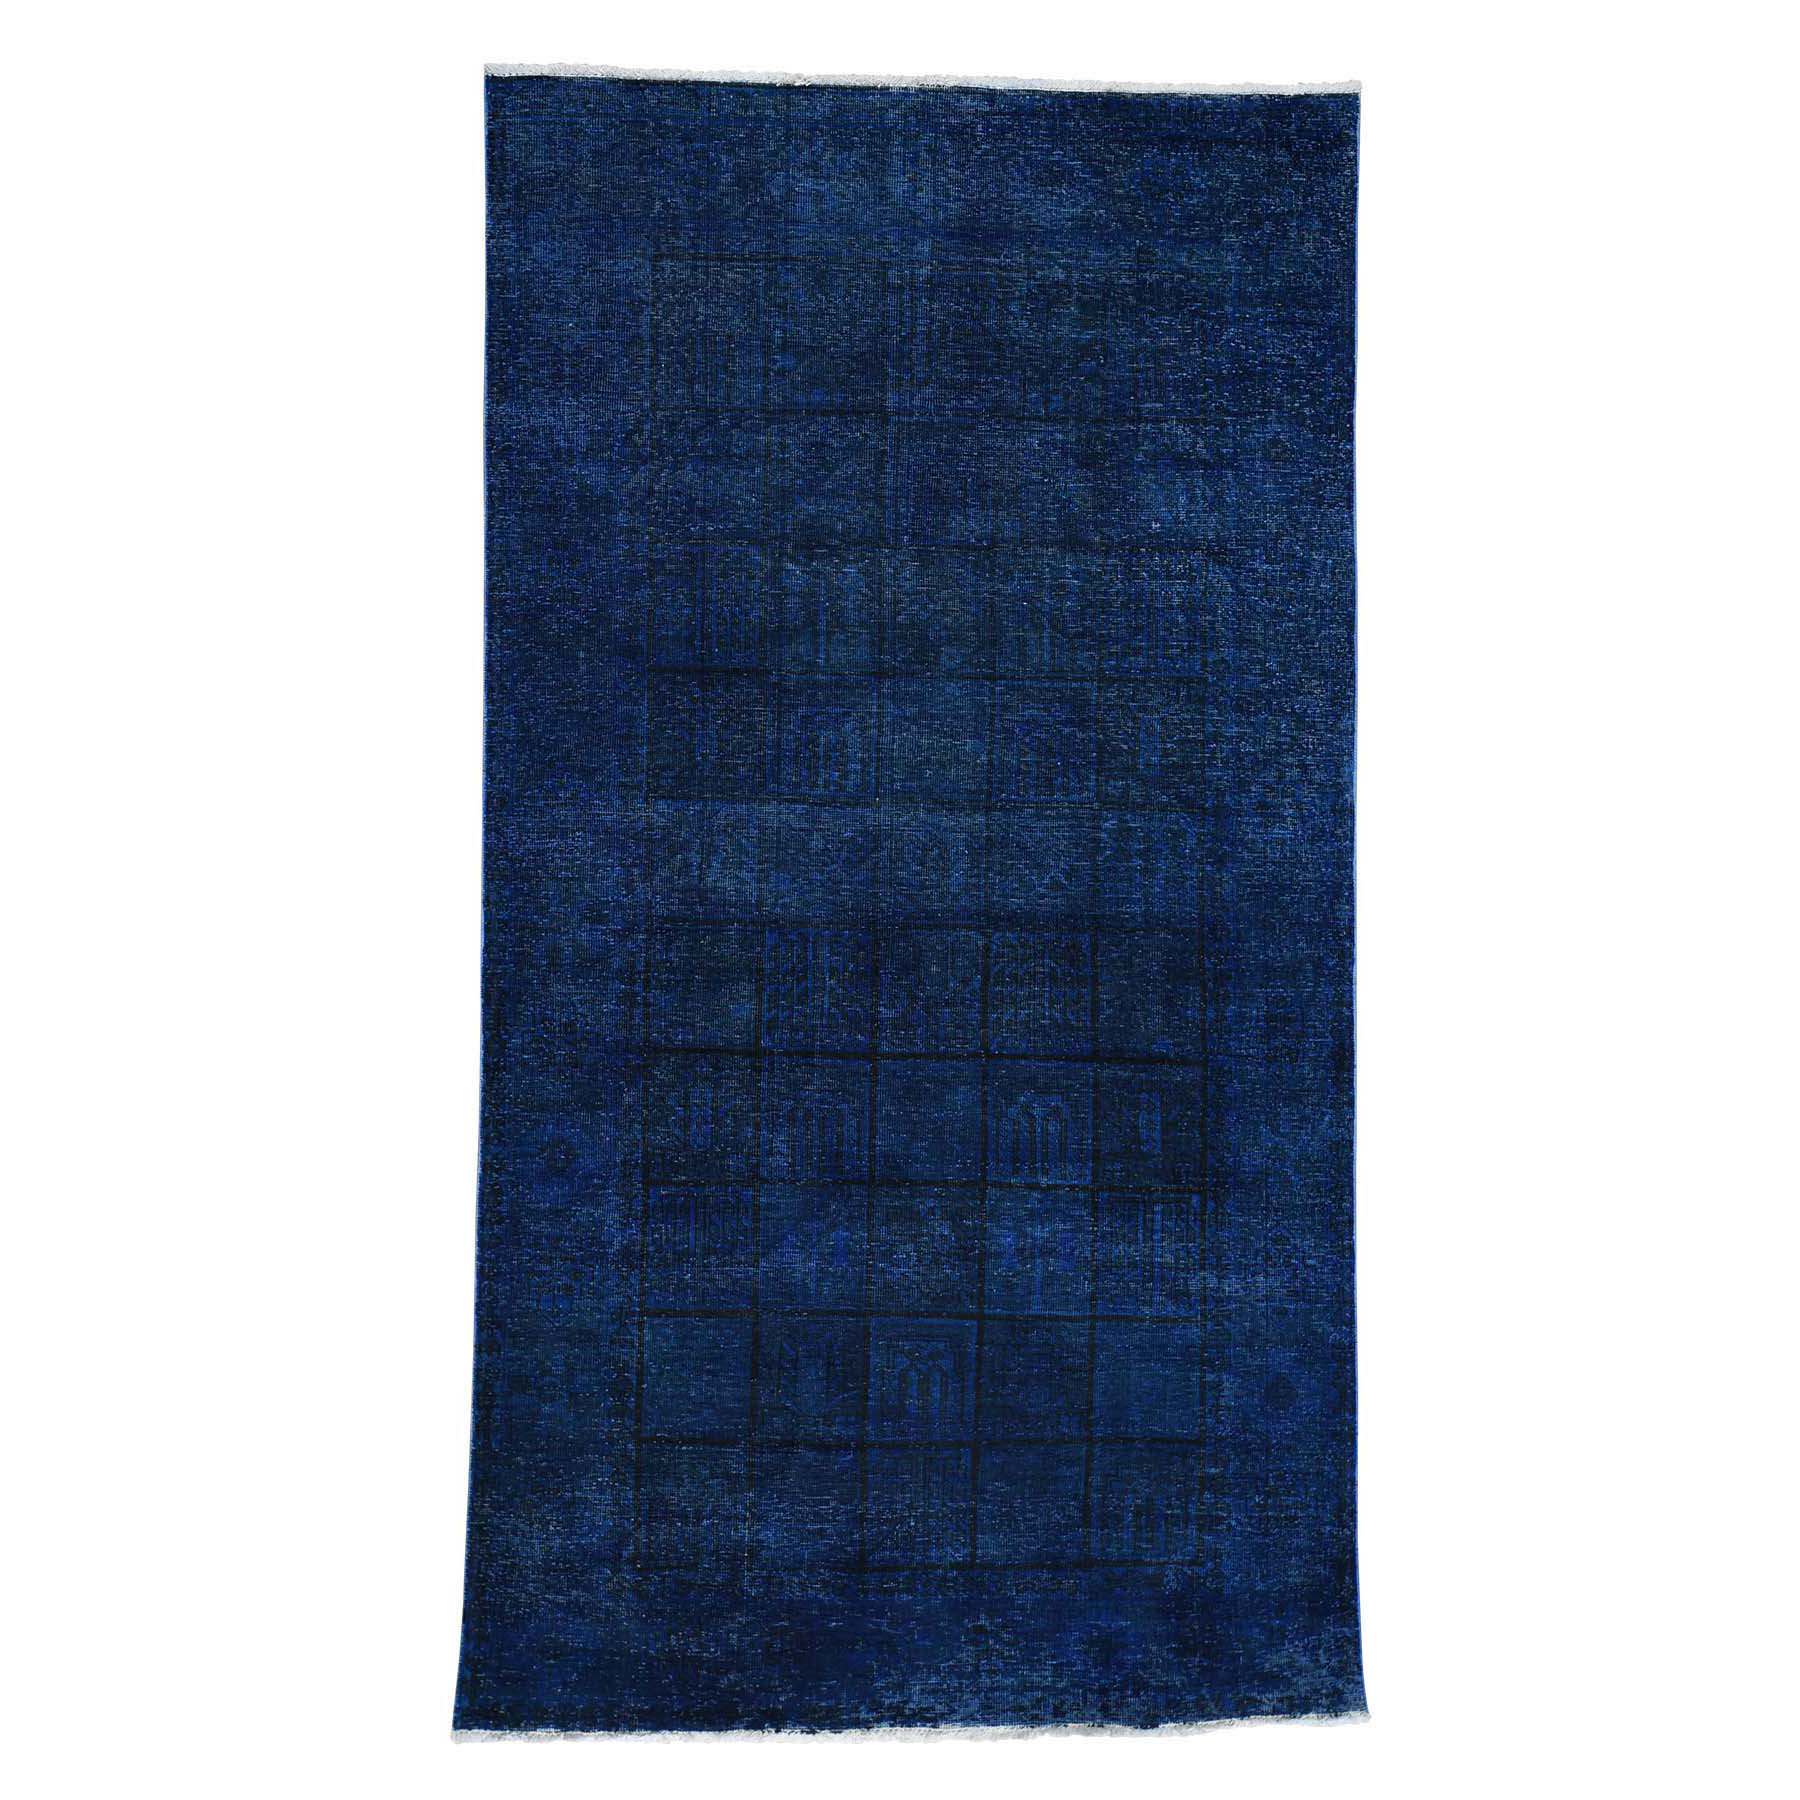 Fetneh Collection And Vintage Overdyed Collection Hand Knotted Blue Rug No: 0175272